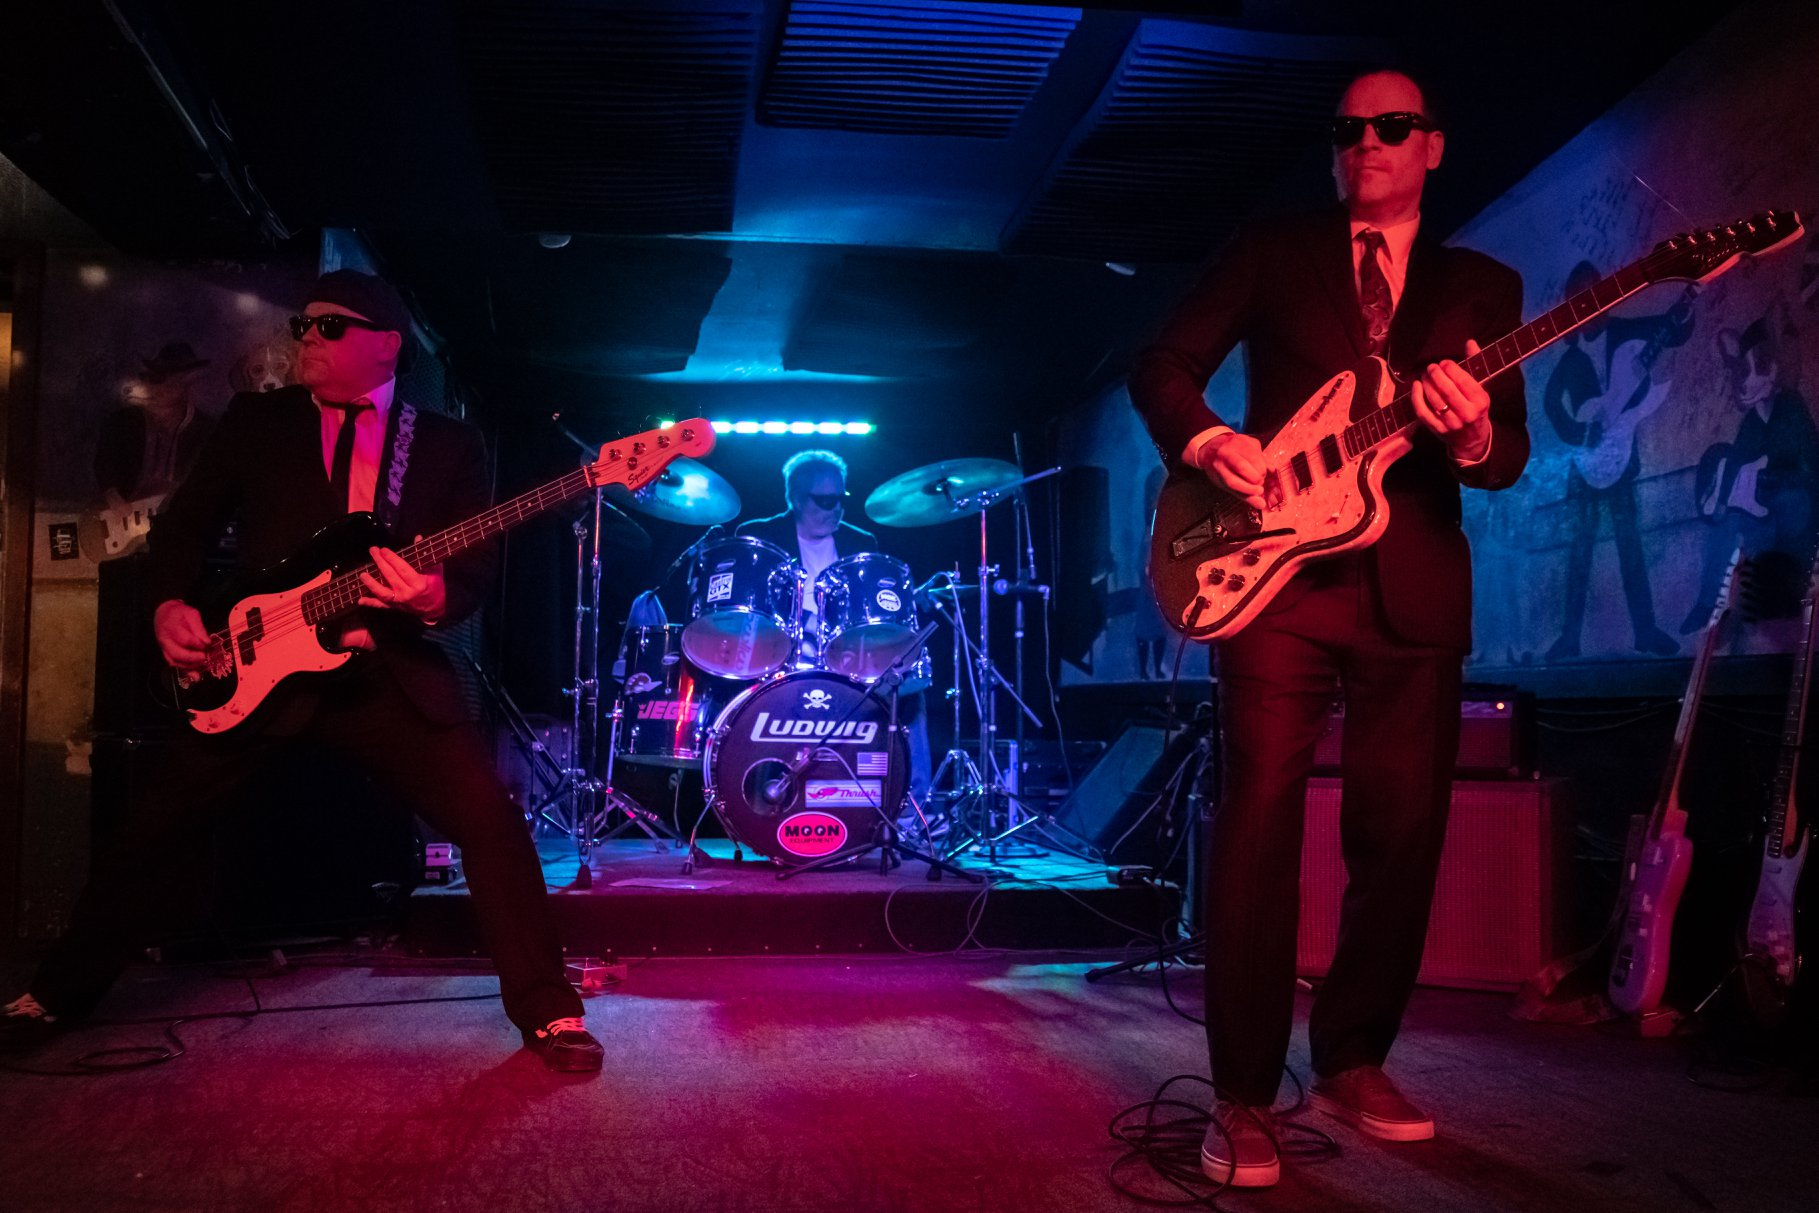 The Turbosonics - Three-piece, instrumental, surf-rock band based in Pittsburgh, PA. The Turbosonics play original instrumentals, traditional surf music (Dick Dale, Link Wray, The Surfaris, The Ventures, etc.), and a few unconventional surf-instro adaptations.